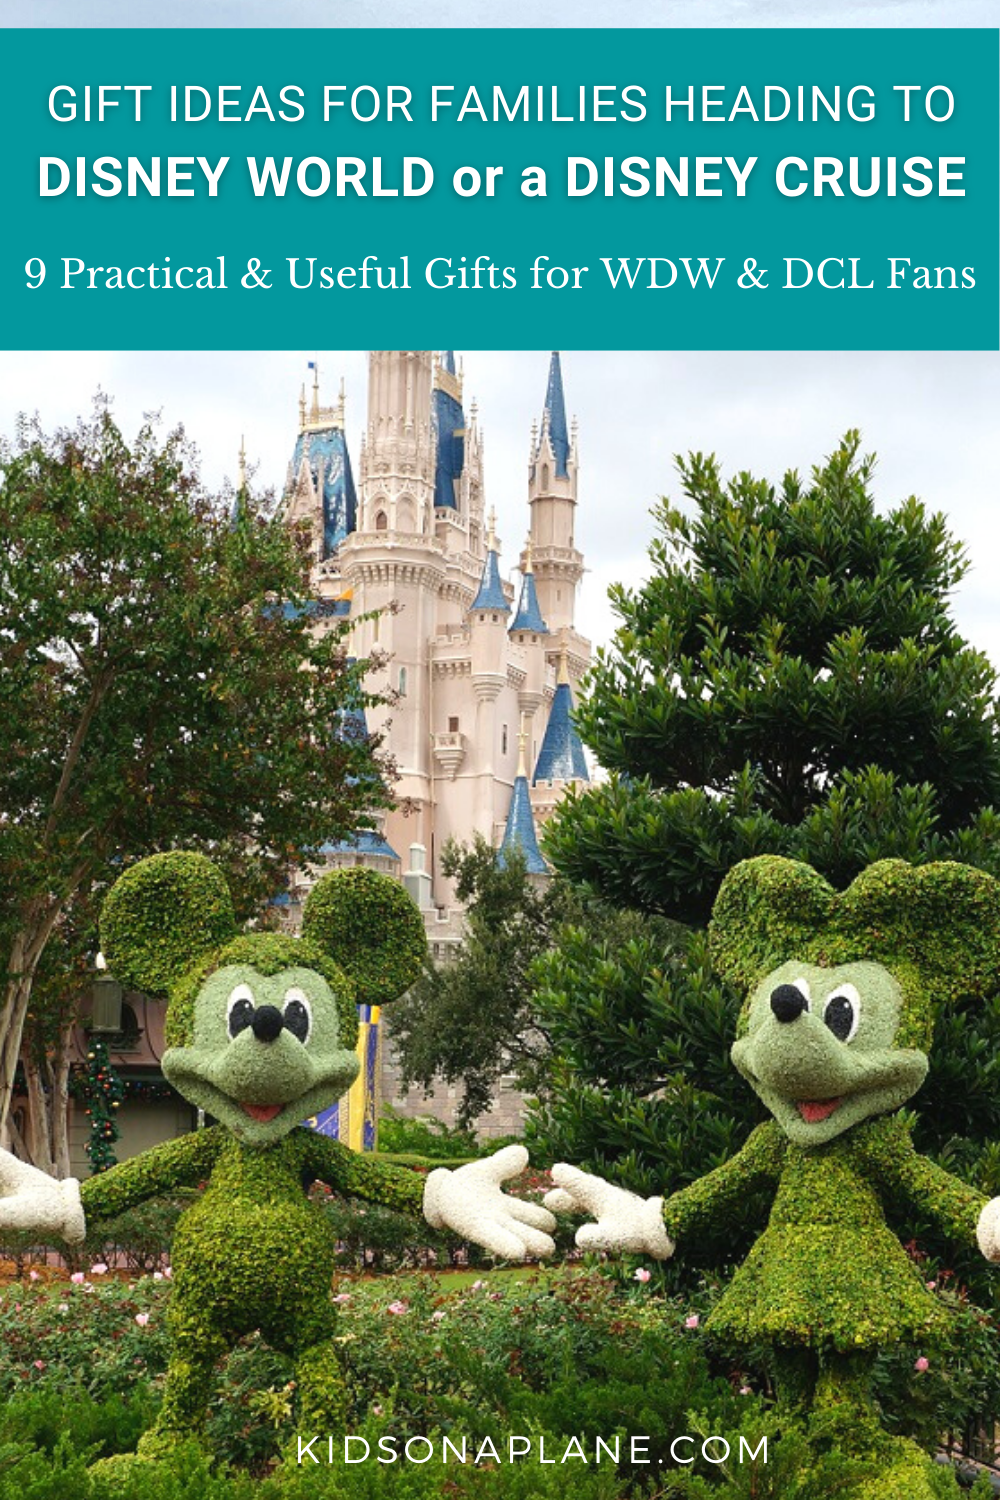 Gift Ideas for Disney World and Disney Cruise Fans - 9 Practical and useful gifts for WDW and DCL Guests